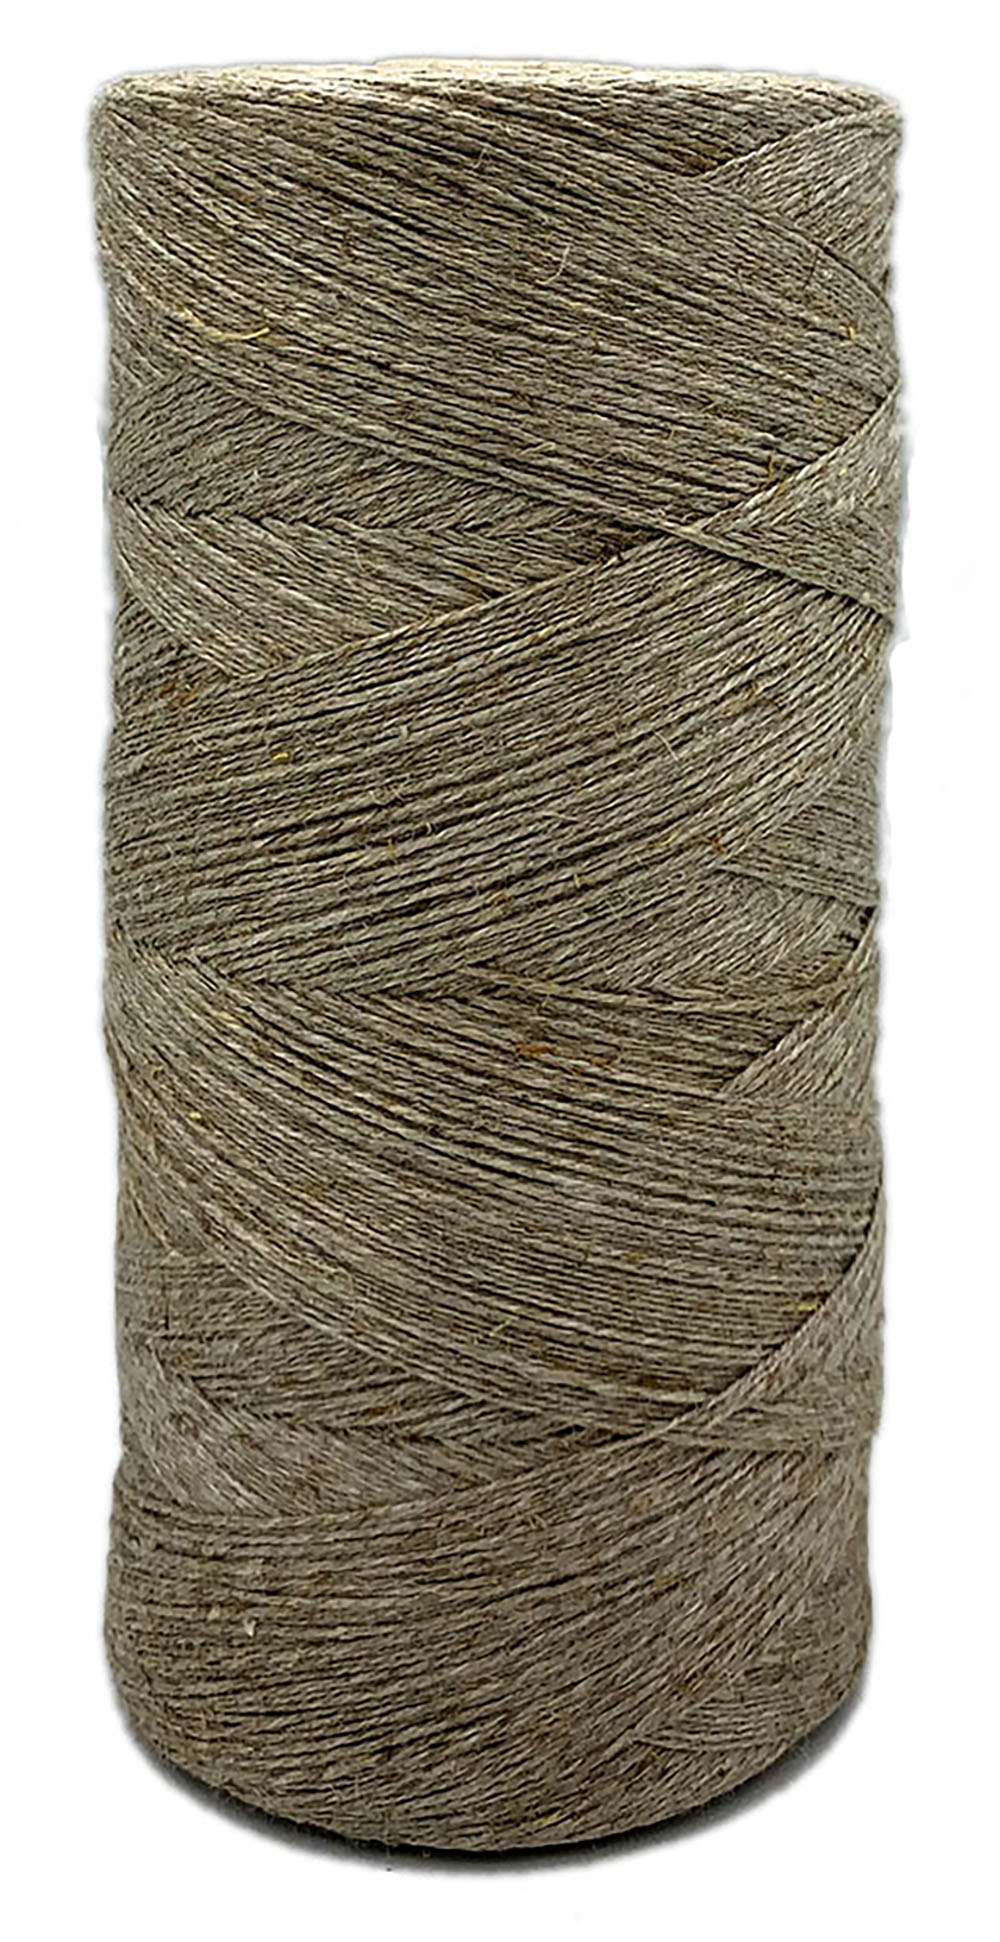 "4403 - 3 Strand Natural Hemp ""Fingering Weight"" Yarn"